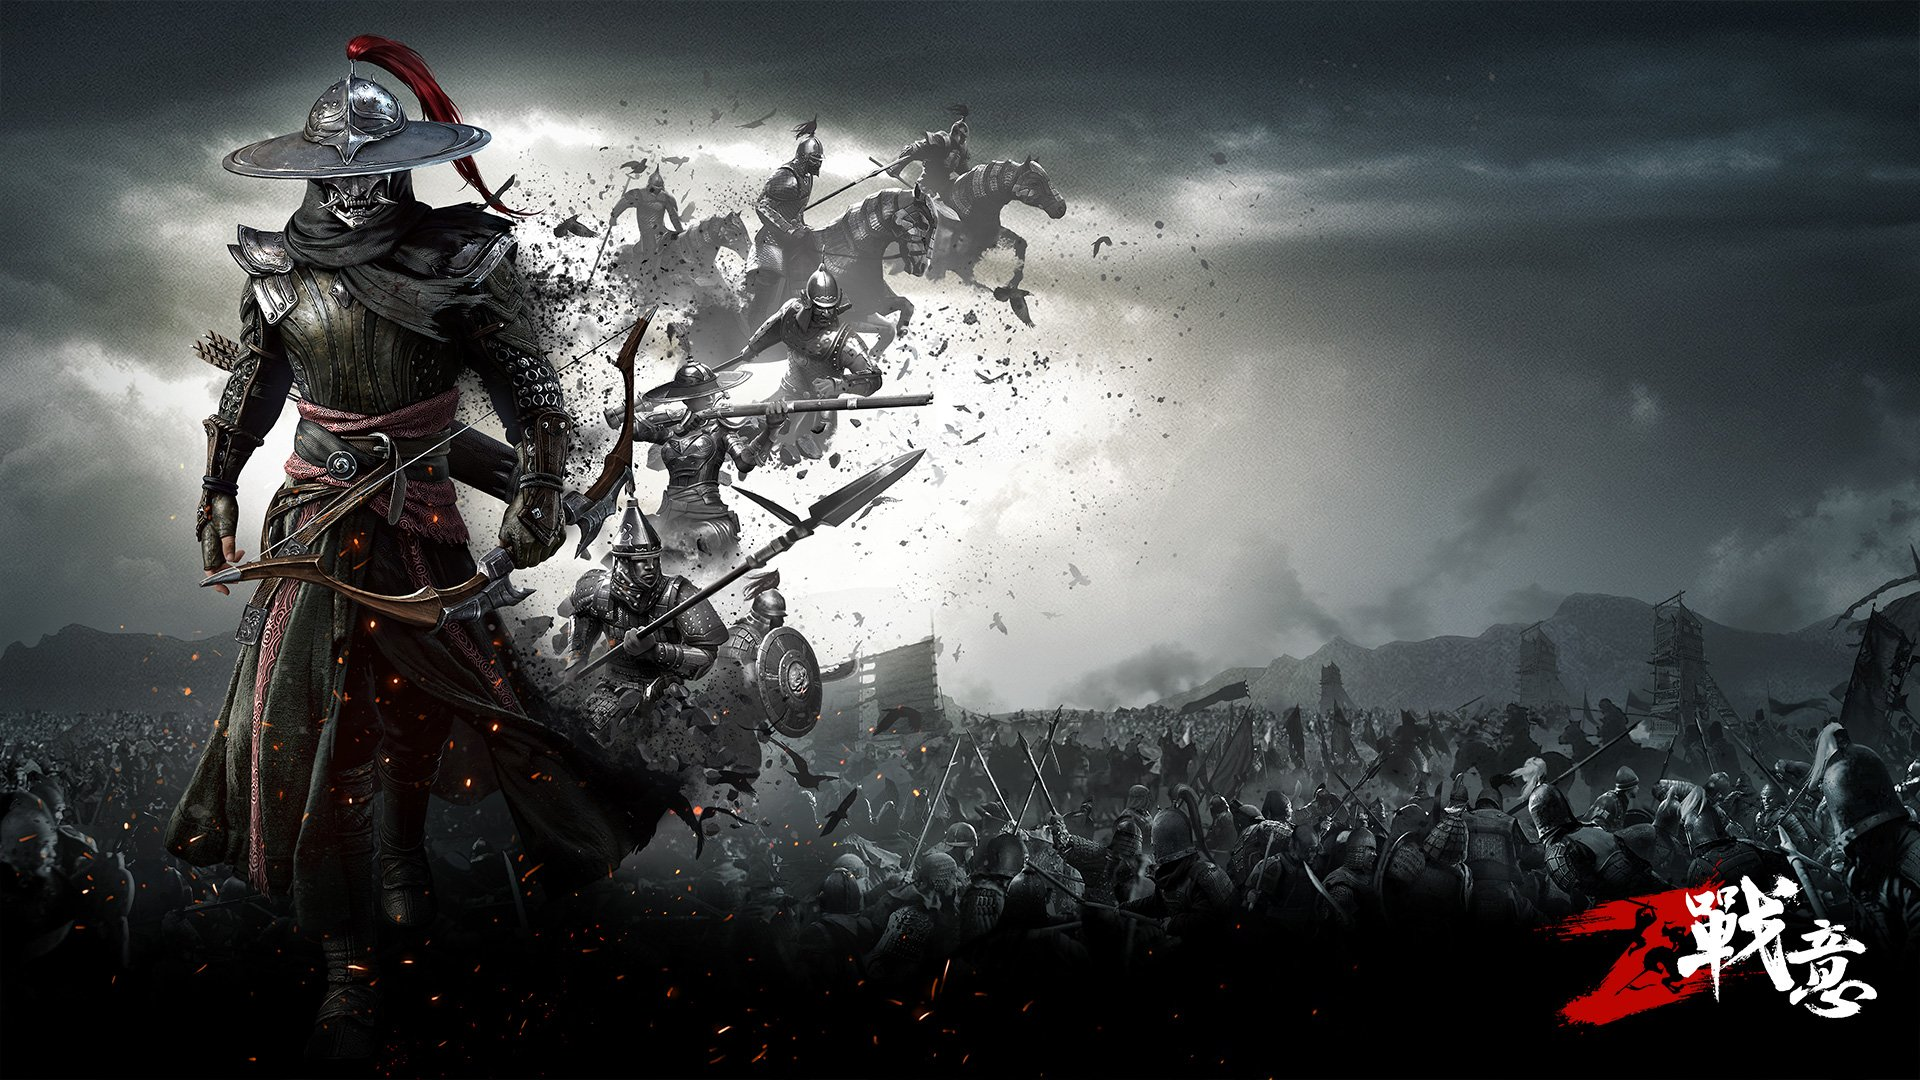 14 Conquerors Blade HD Wallpapers Background Images   Wallpaper 1920x1080